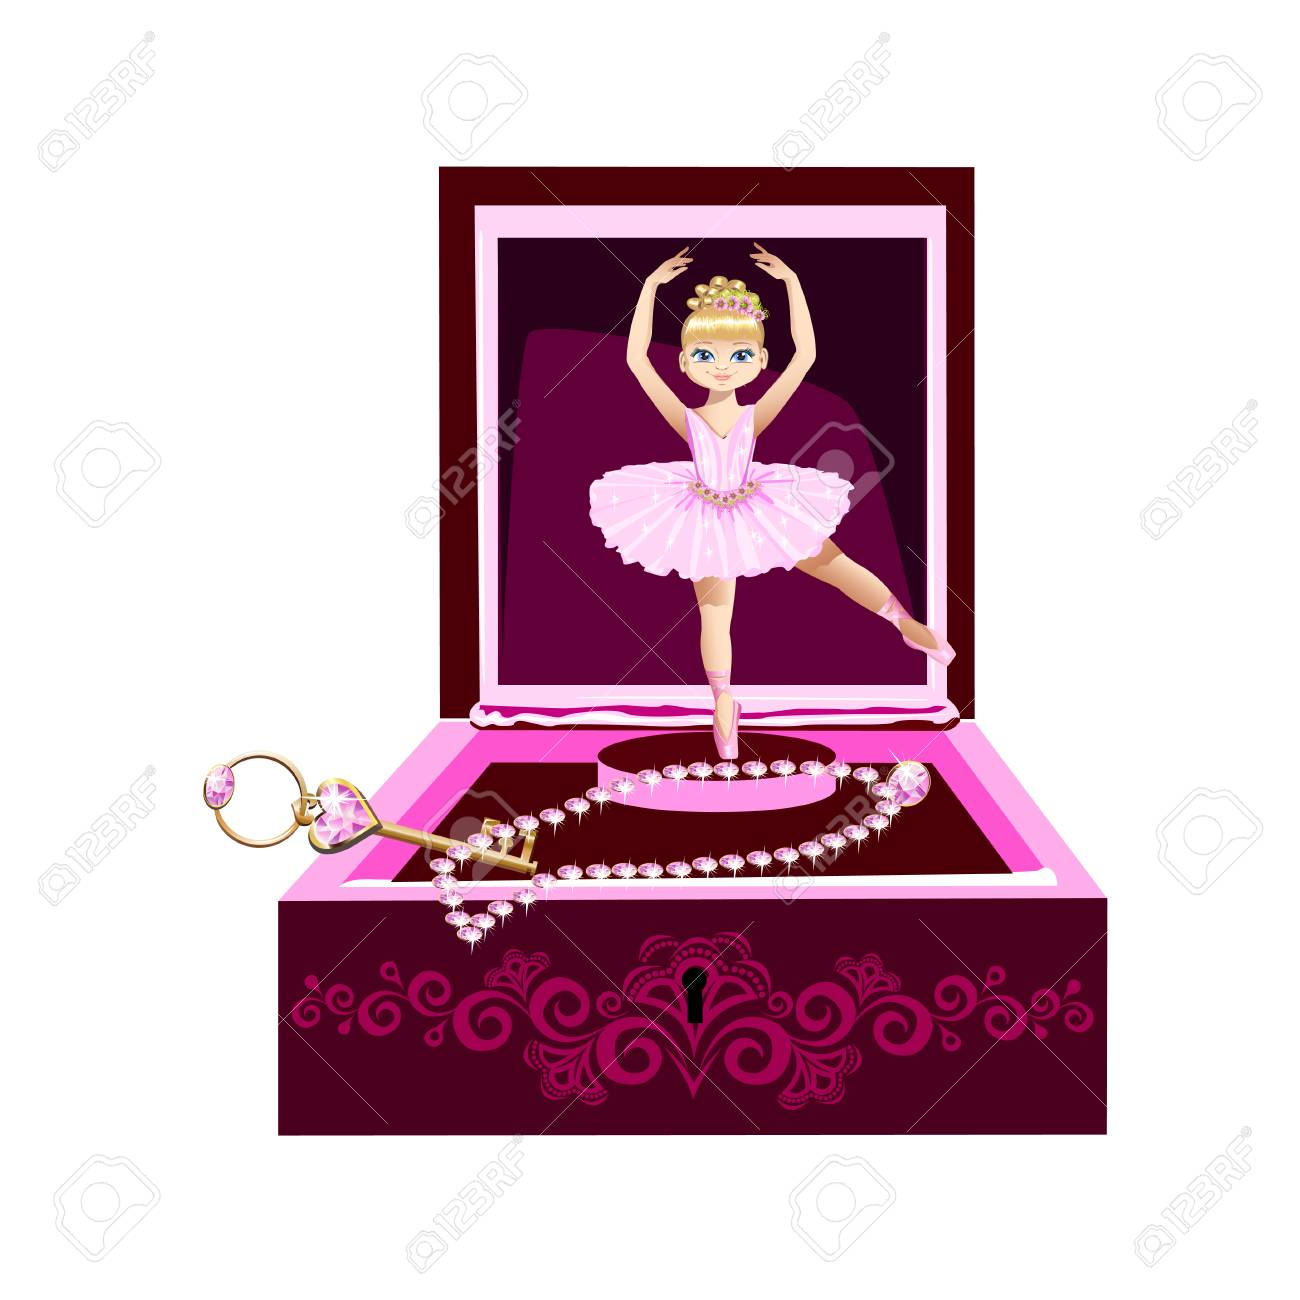 music box for jewelry with a ballerina. Vector illustration..